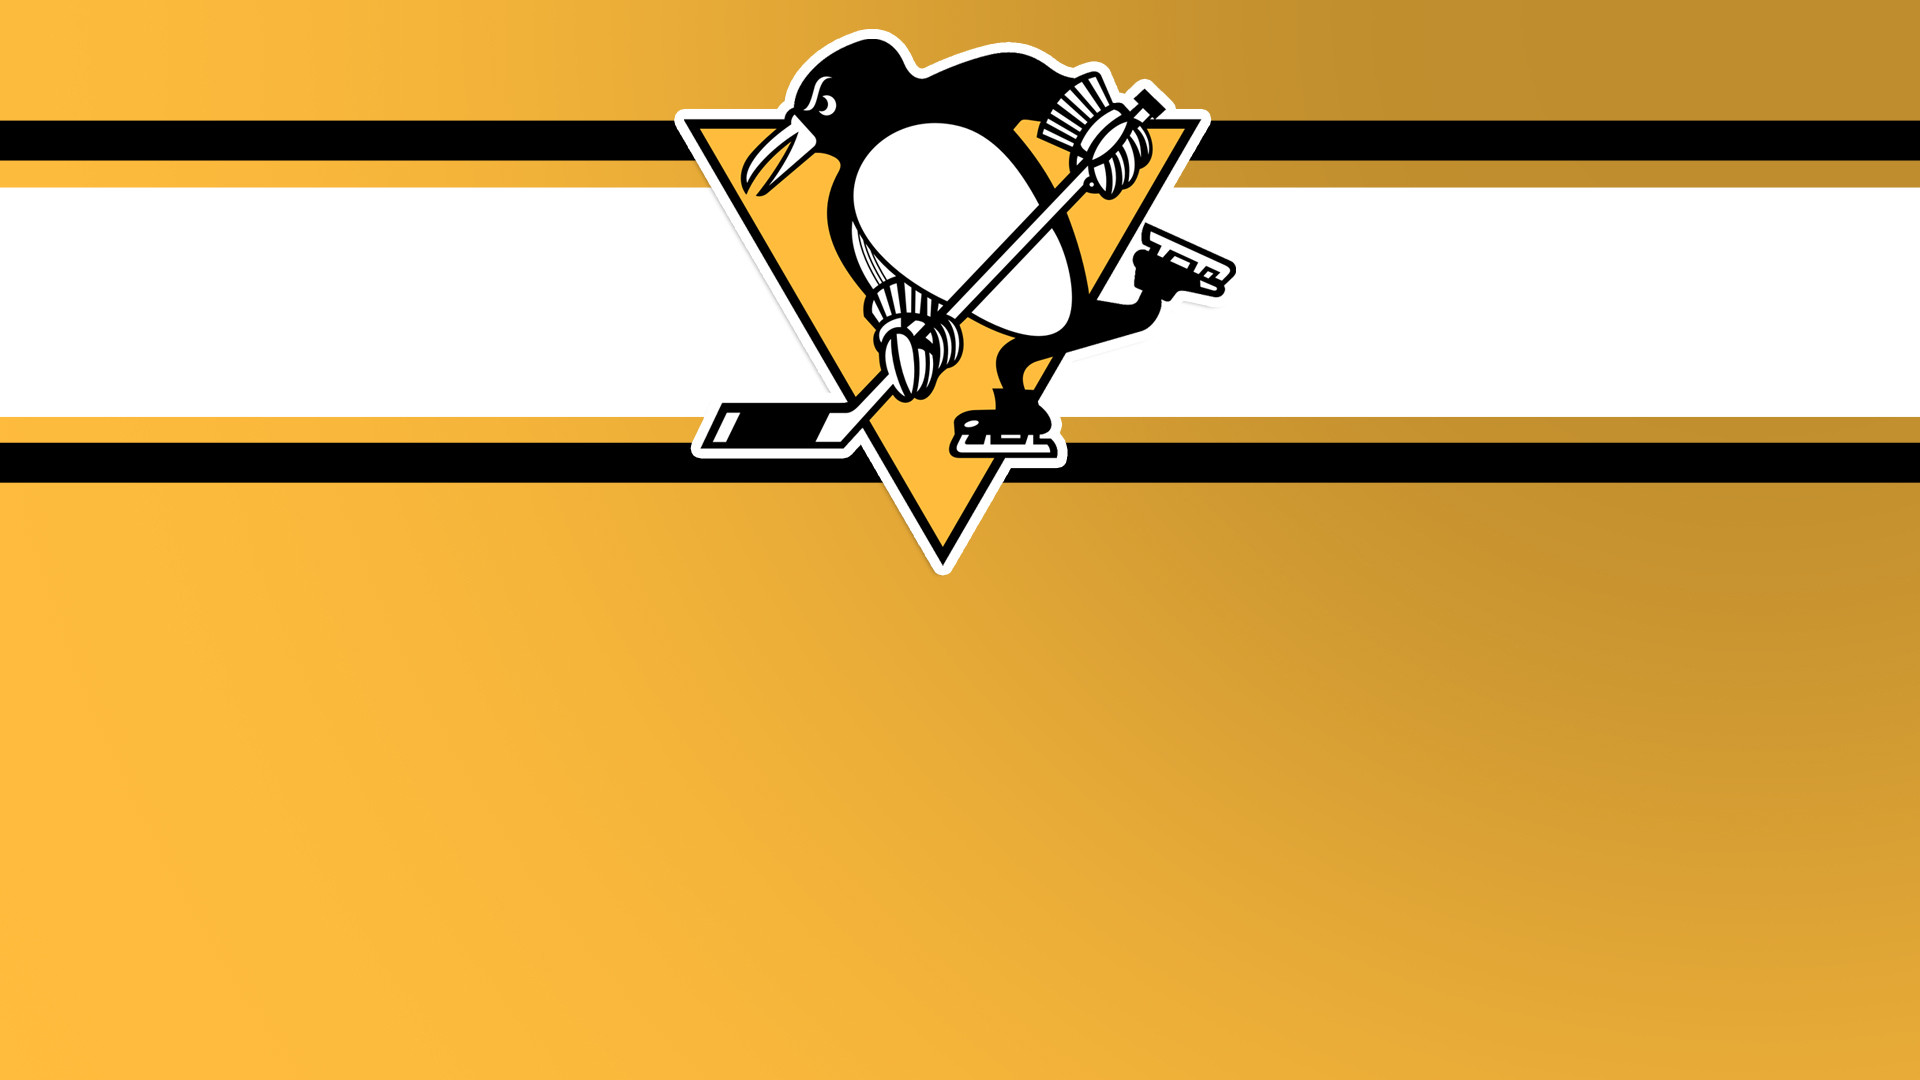 Pittsburgh penguins wallpaper hd 80 images - Pittsburgh penguins iphone wallpaper ...